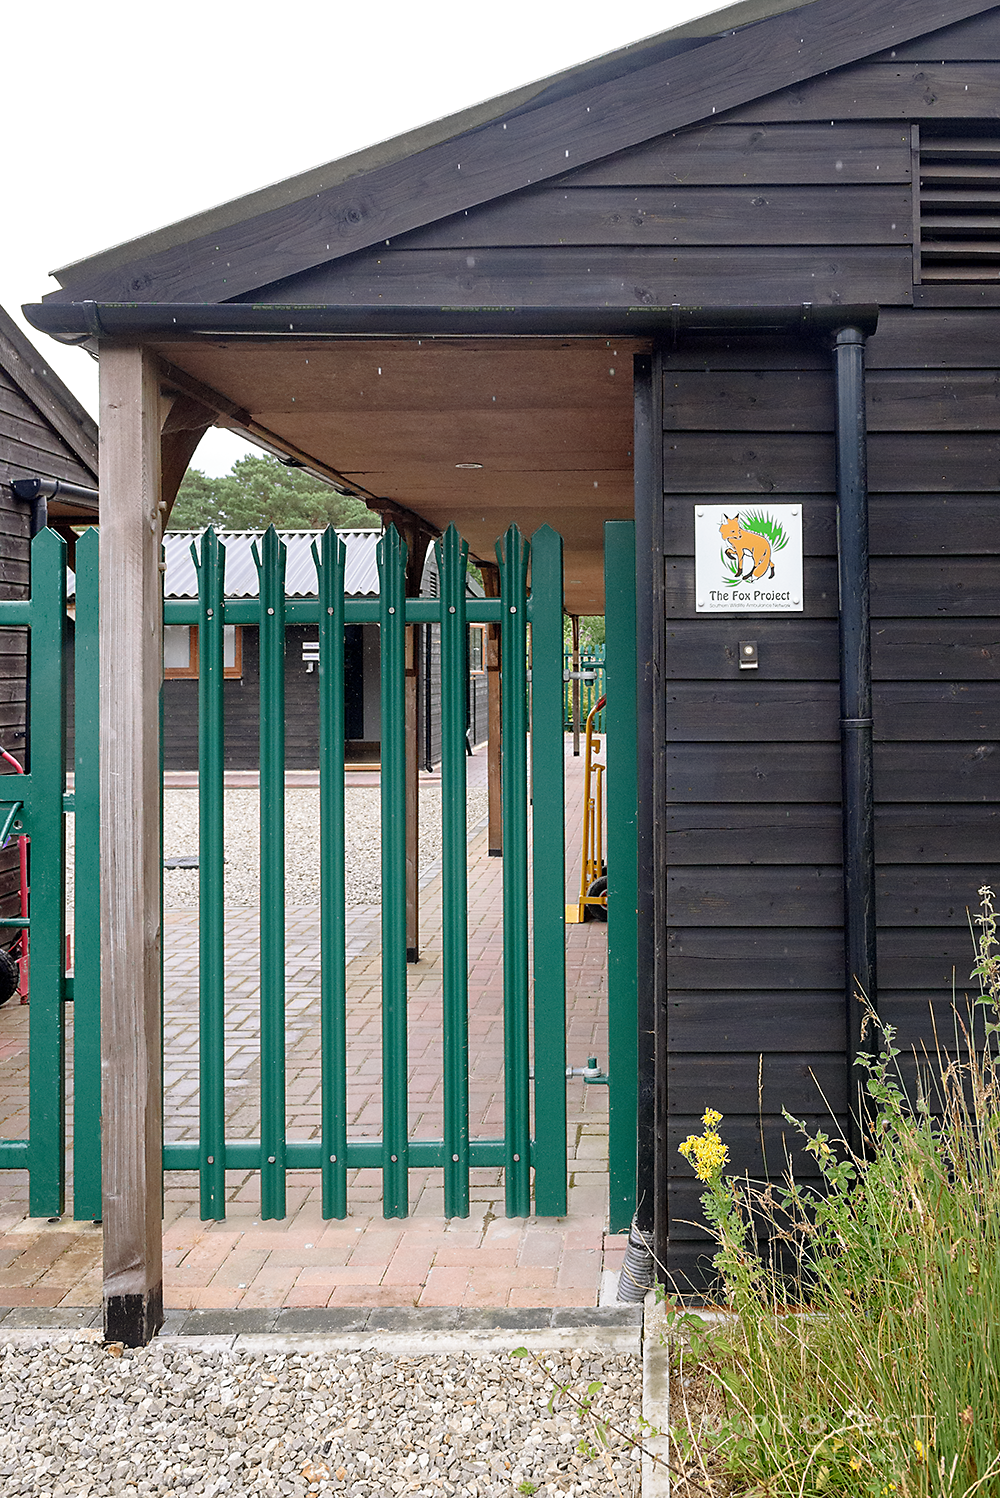 The entrance to The Fox Project at Broadwater Animal Hospital